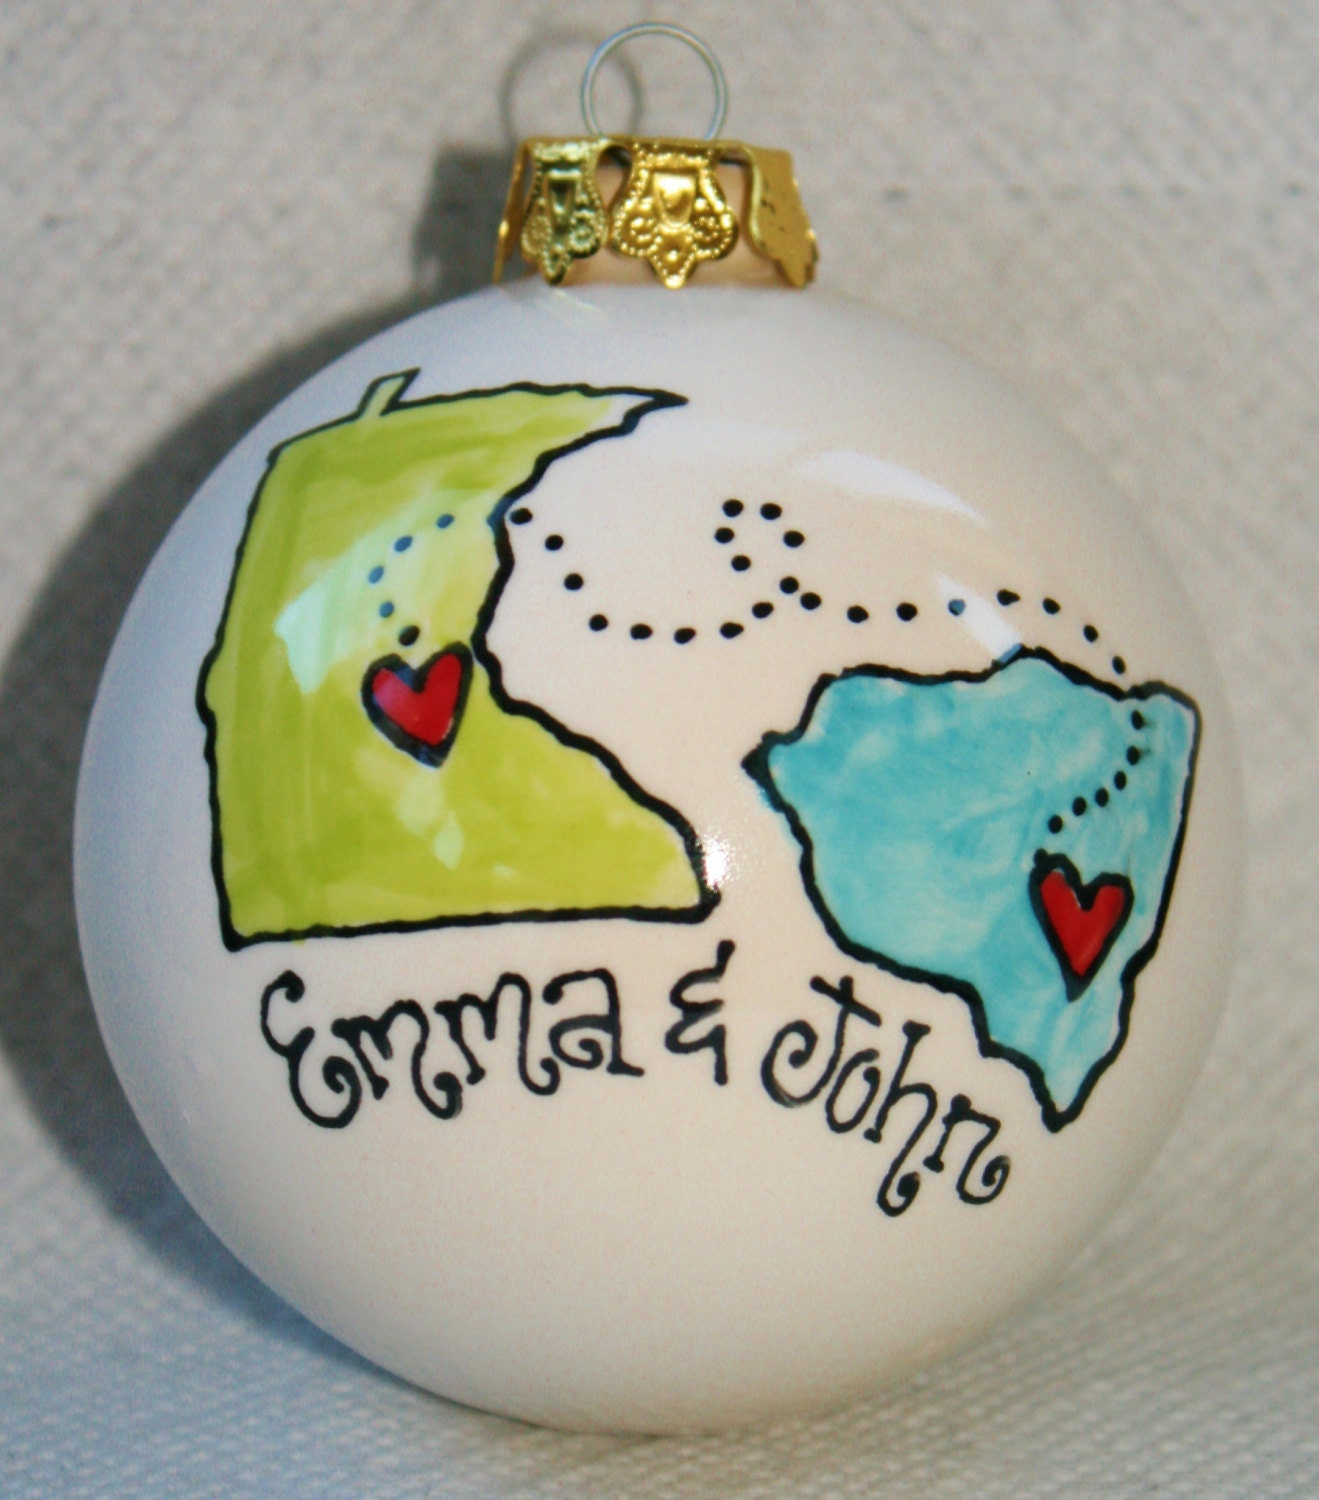 Christmas Gift Ideas For Long Distance Boyfriend: Long Distance Relationship Gift By Rschmitz On Etsy